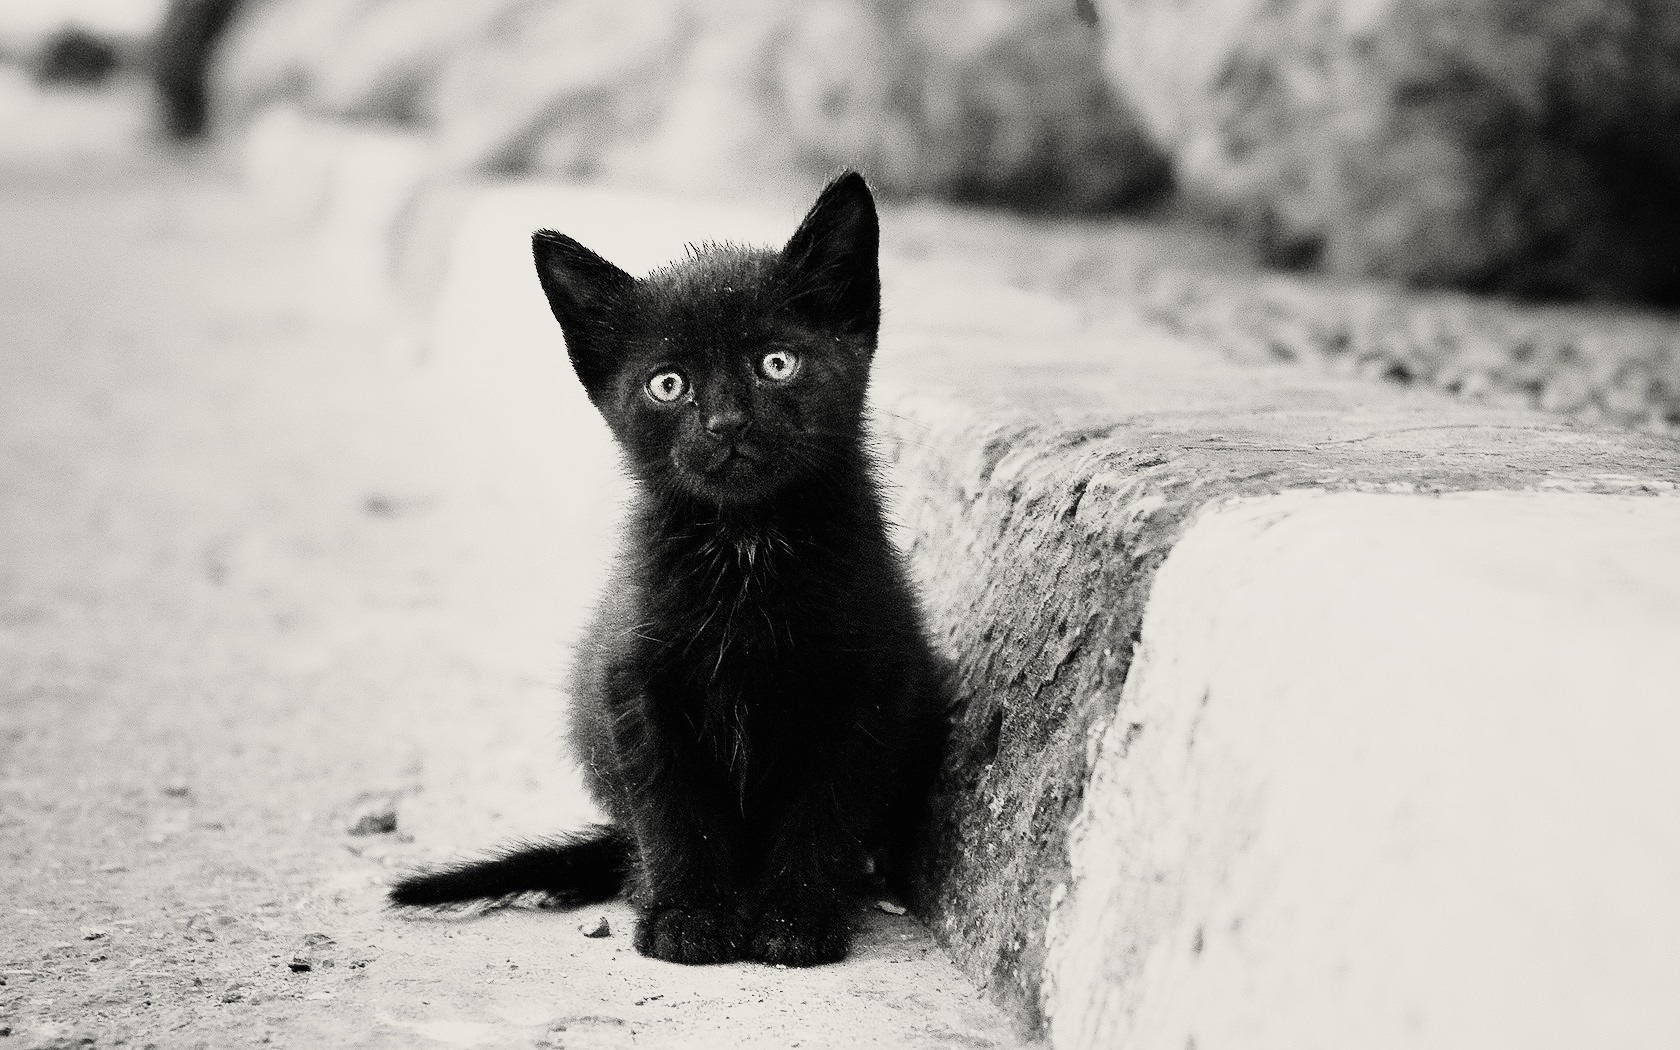 Animated Fish Wallpaper Mobile Lonely Black Kitten Wallpapers Lonely Black Kitten Stock